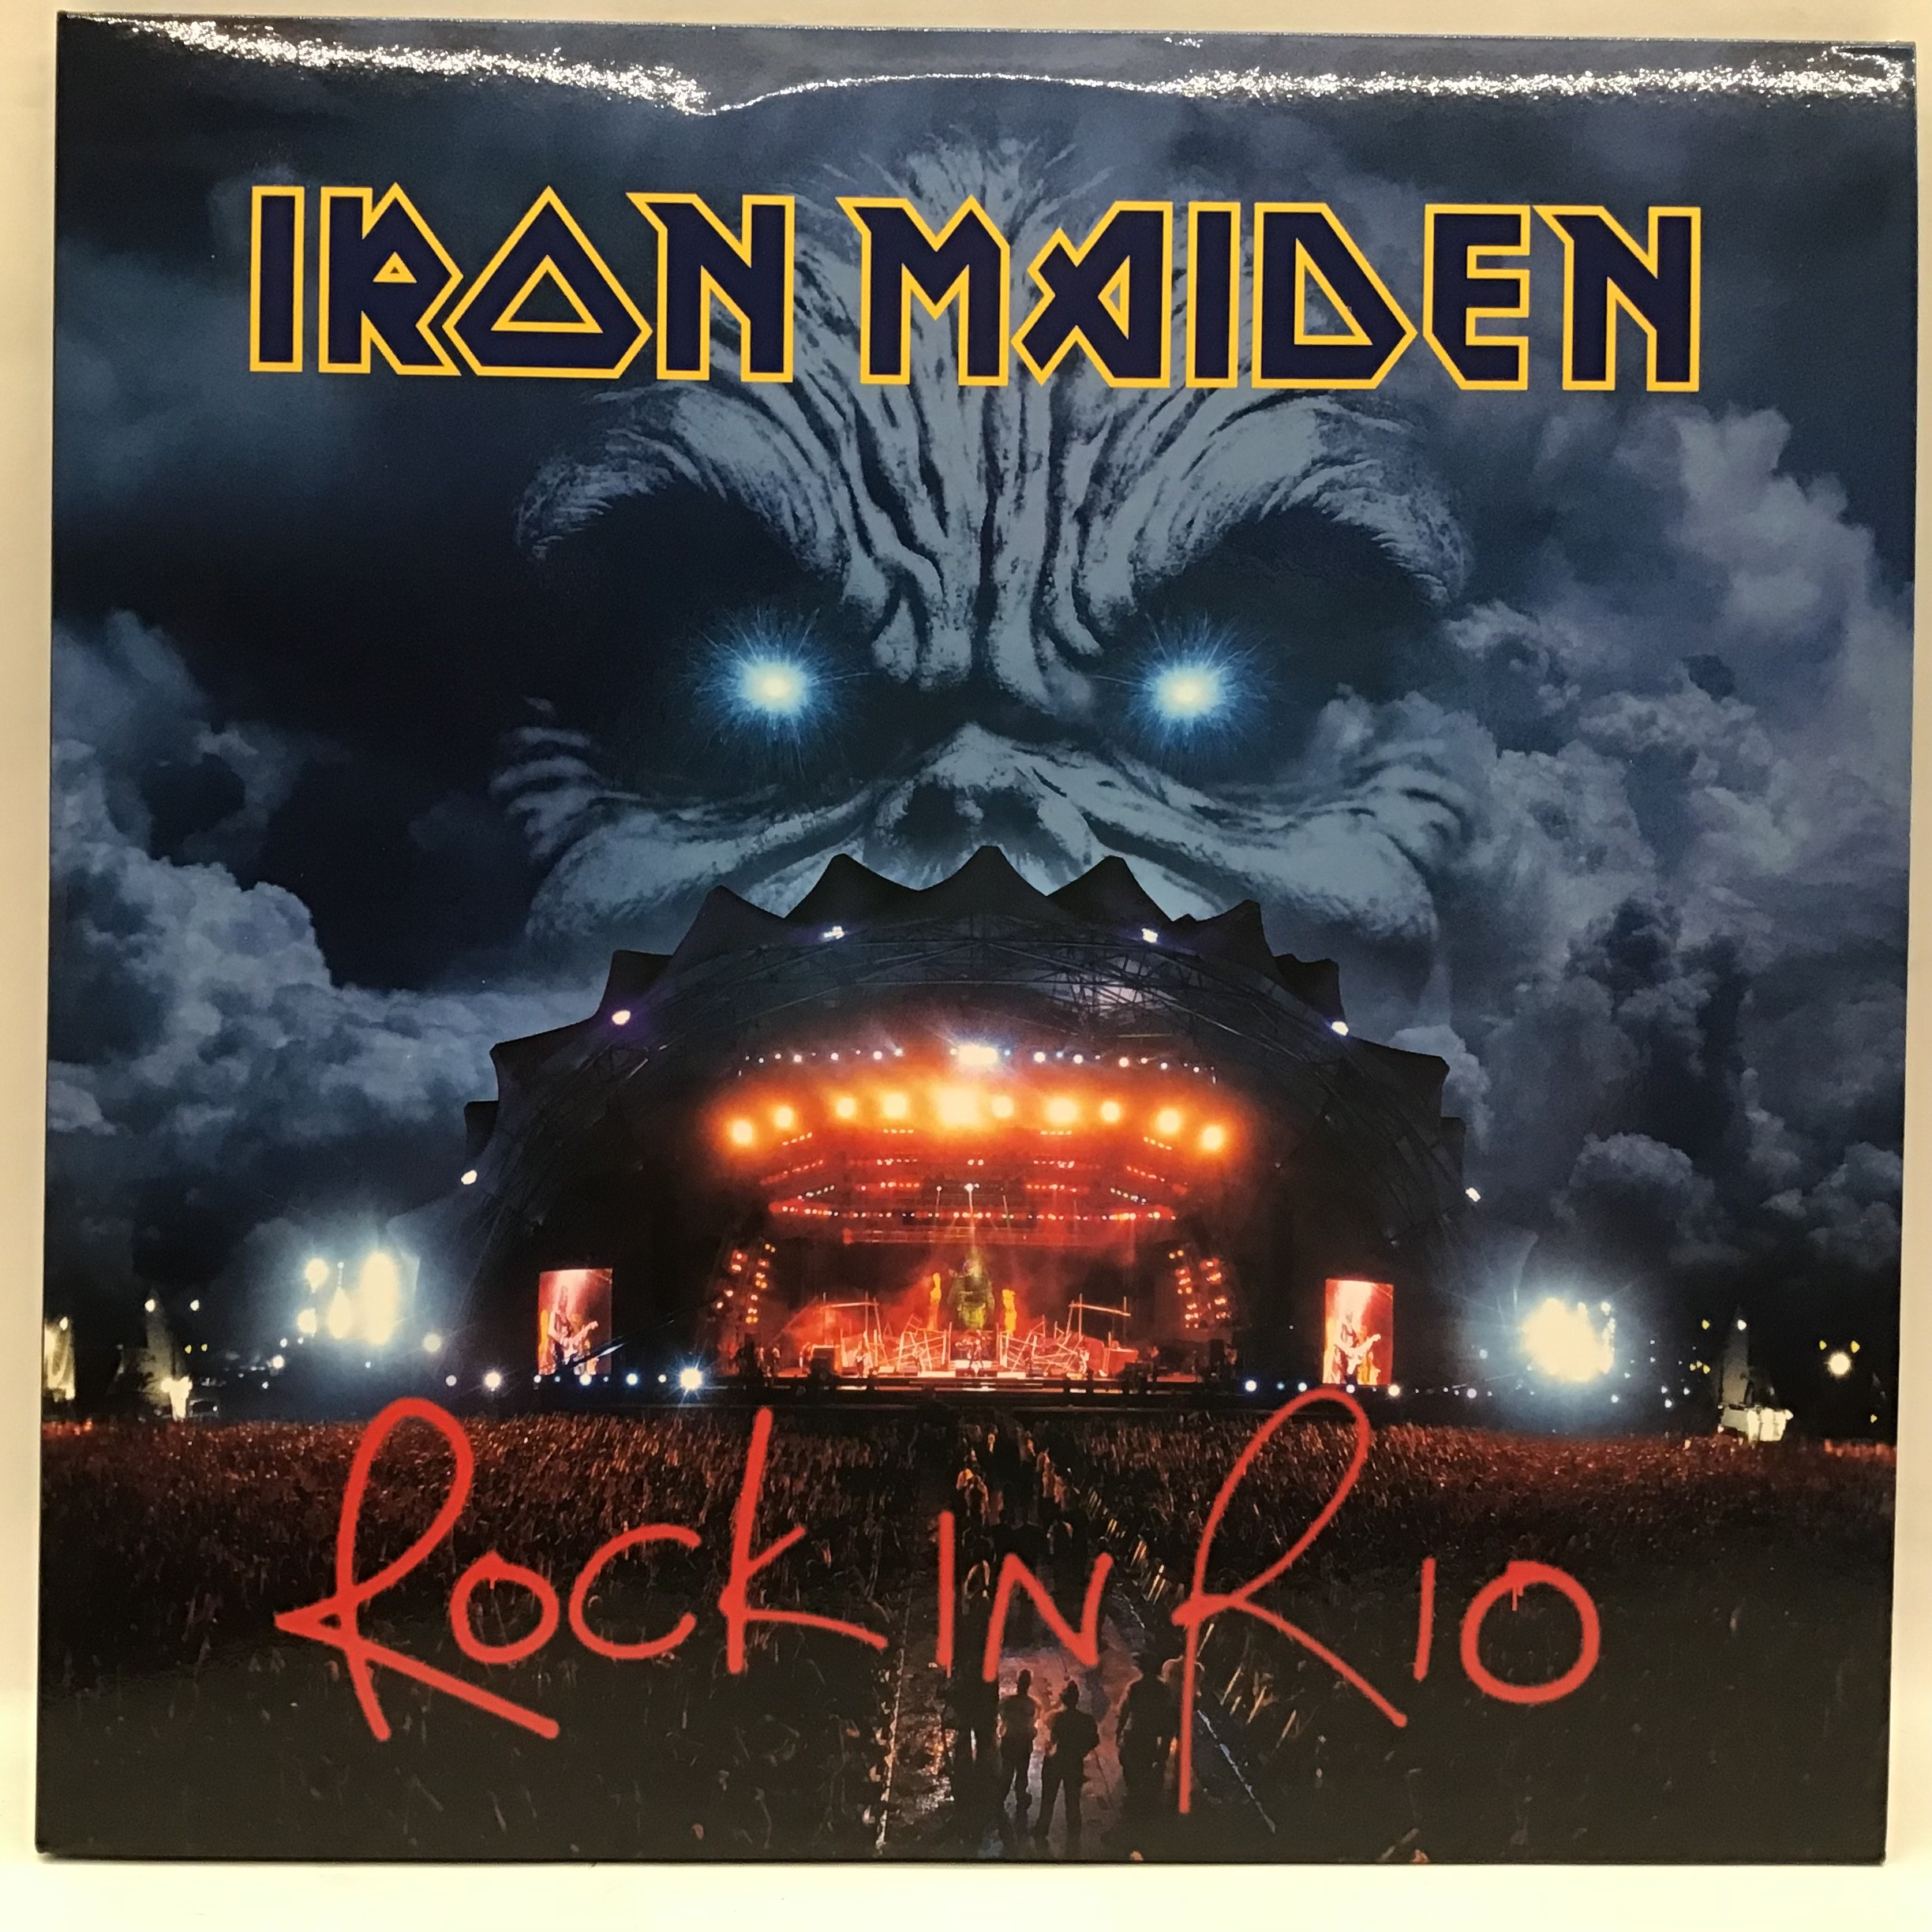 IRON MAIDEN Rock In Rio (3LP 180g Vinyl, 2015) Condition is as new.